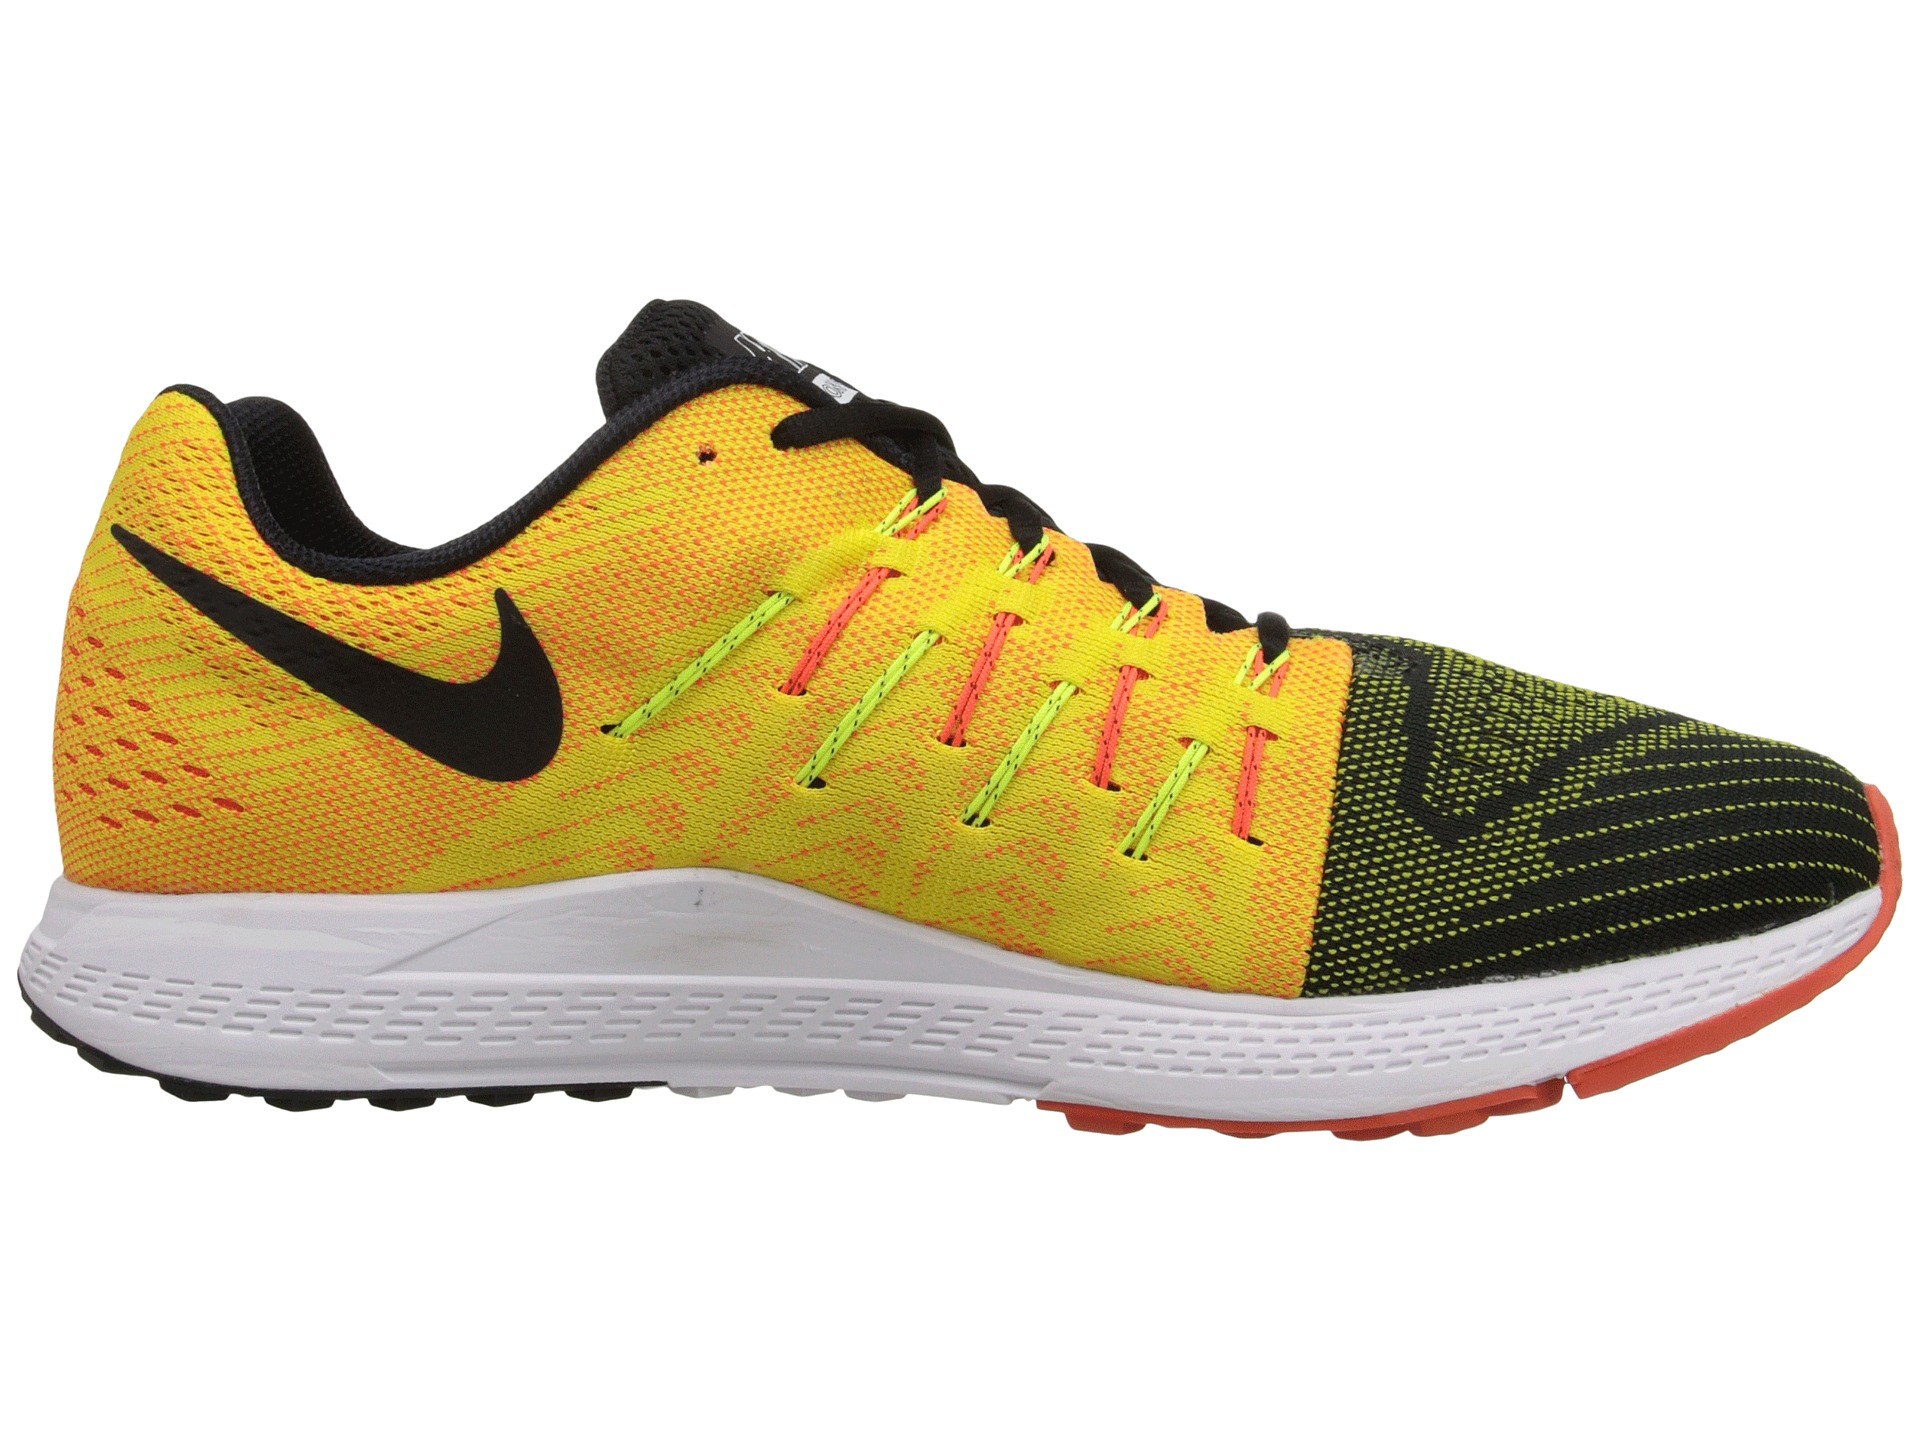 Nike Womens Air Zoom Structure 19 Running Shoes